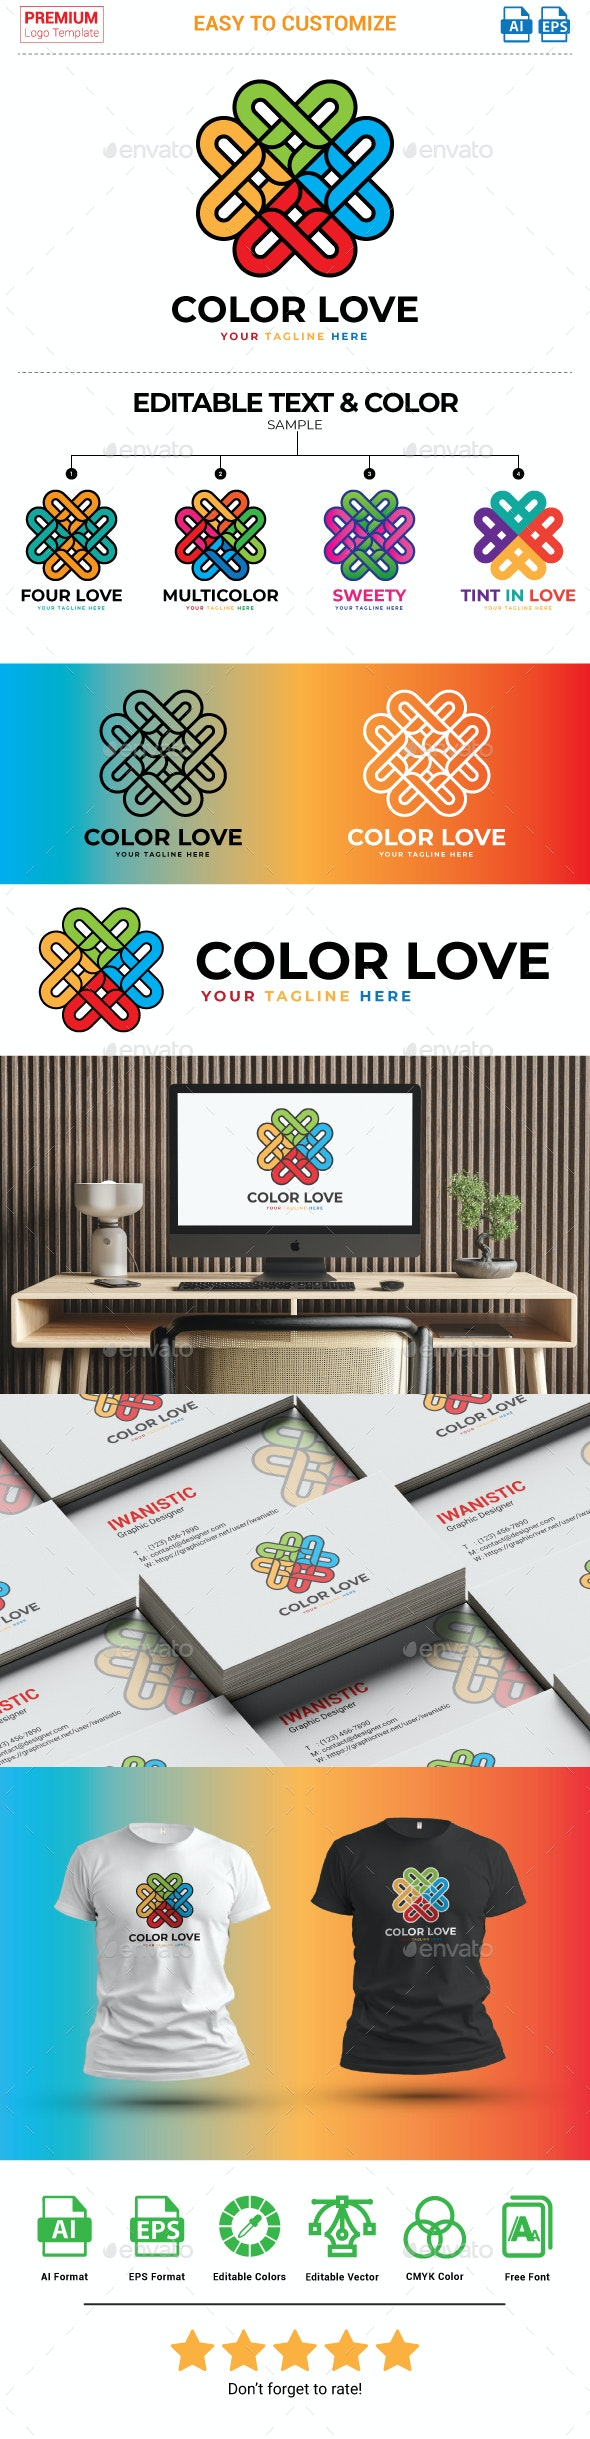 Color love logo - Objects Logo Templates